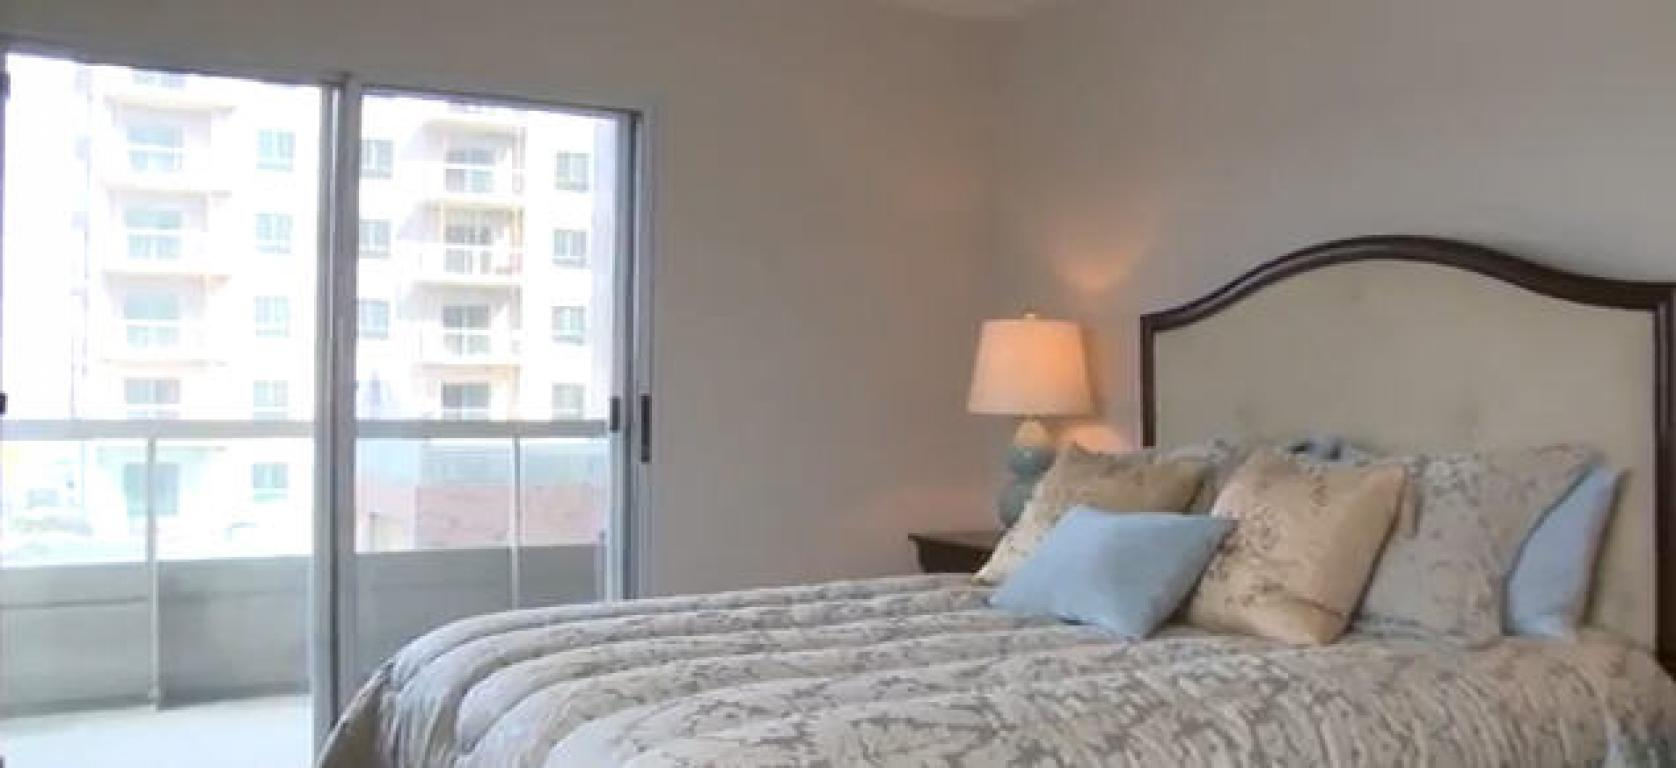 Apartments for Rent Burlington - 168 Plains Rd - Bedroom